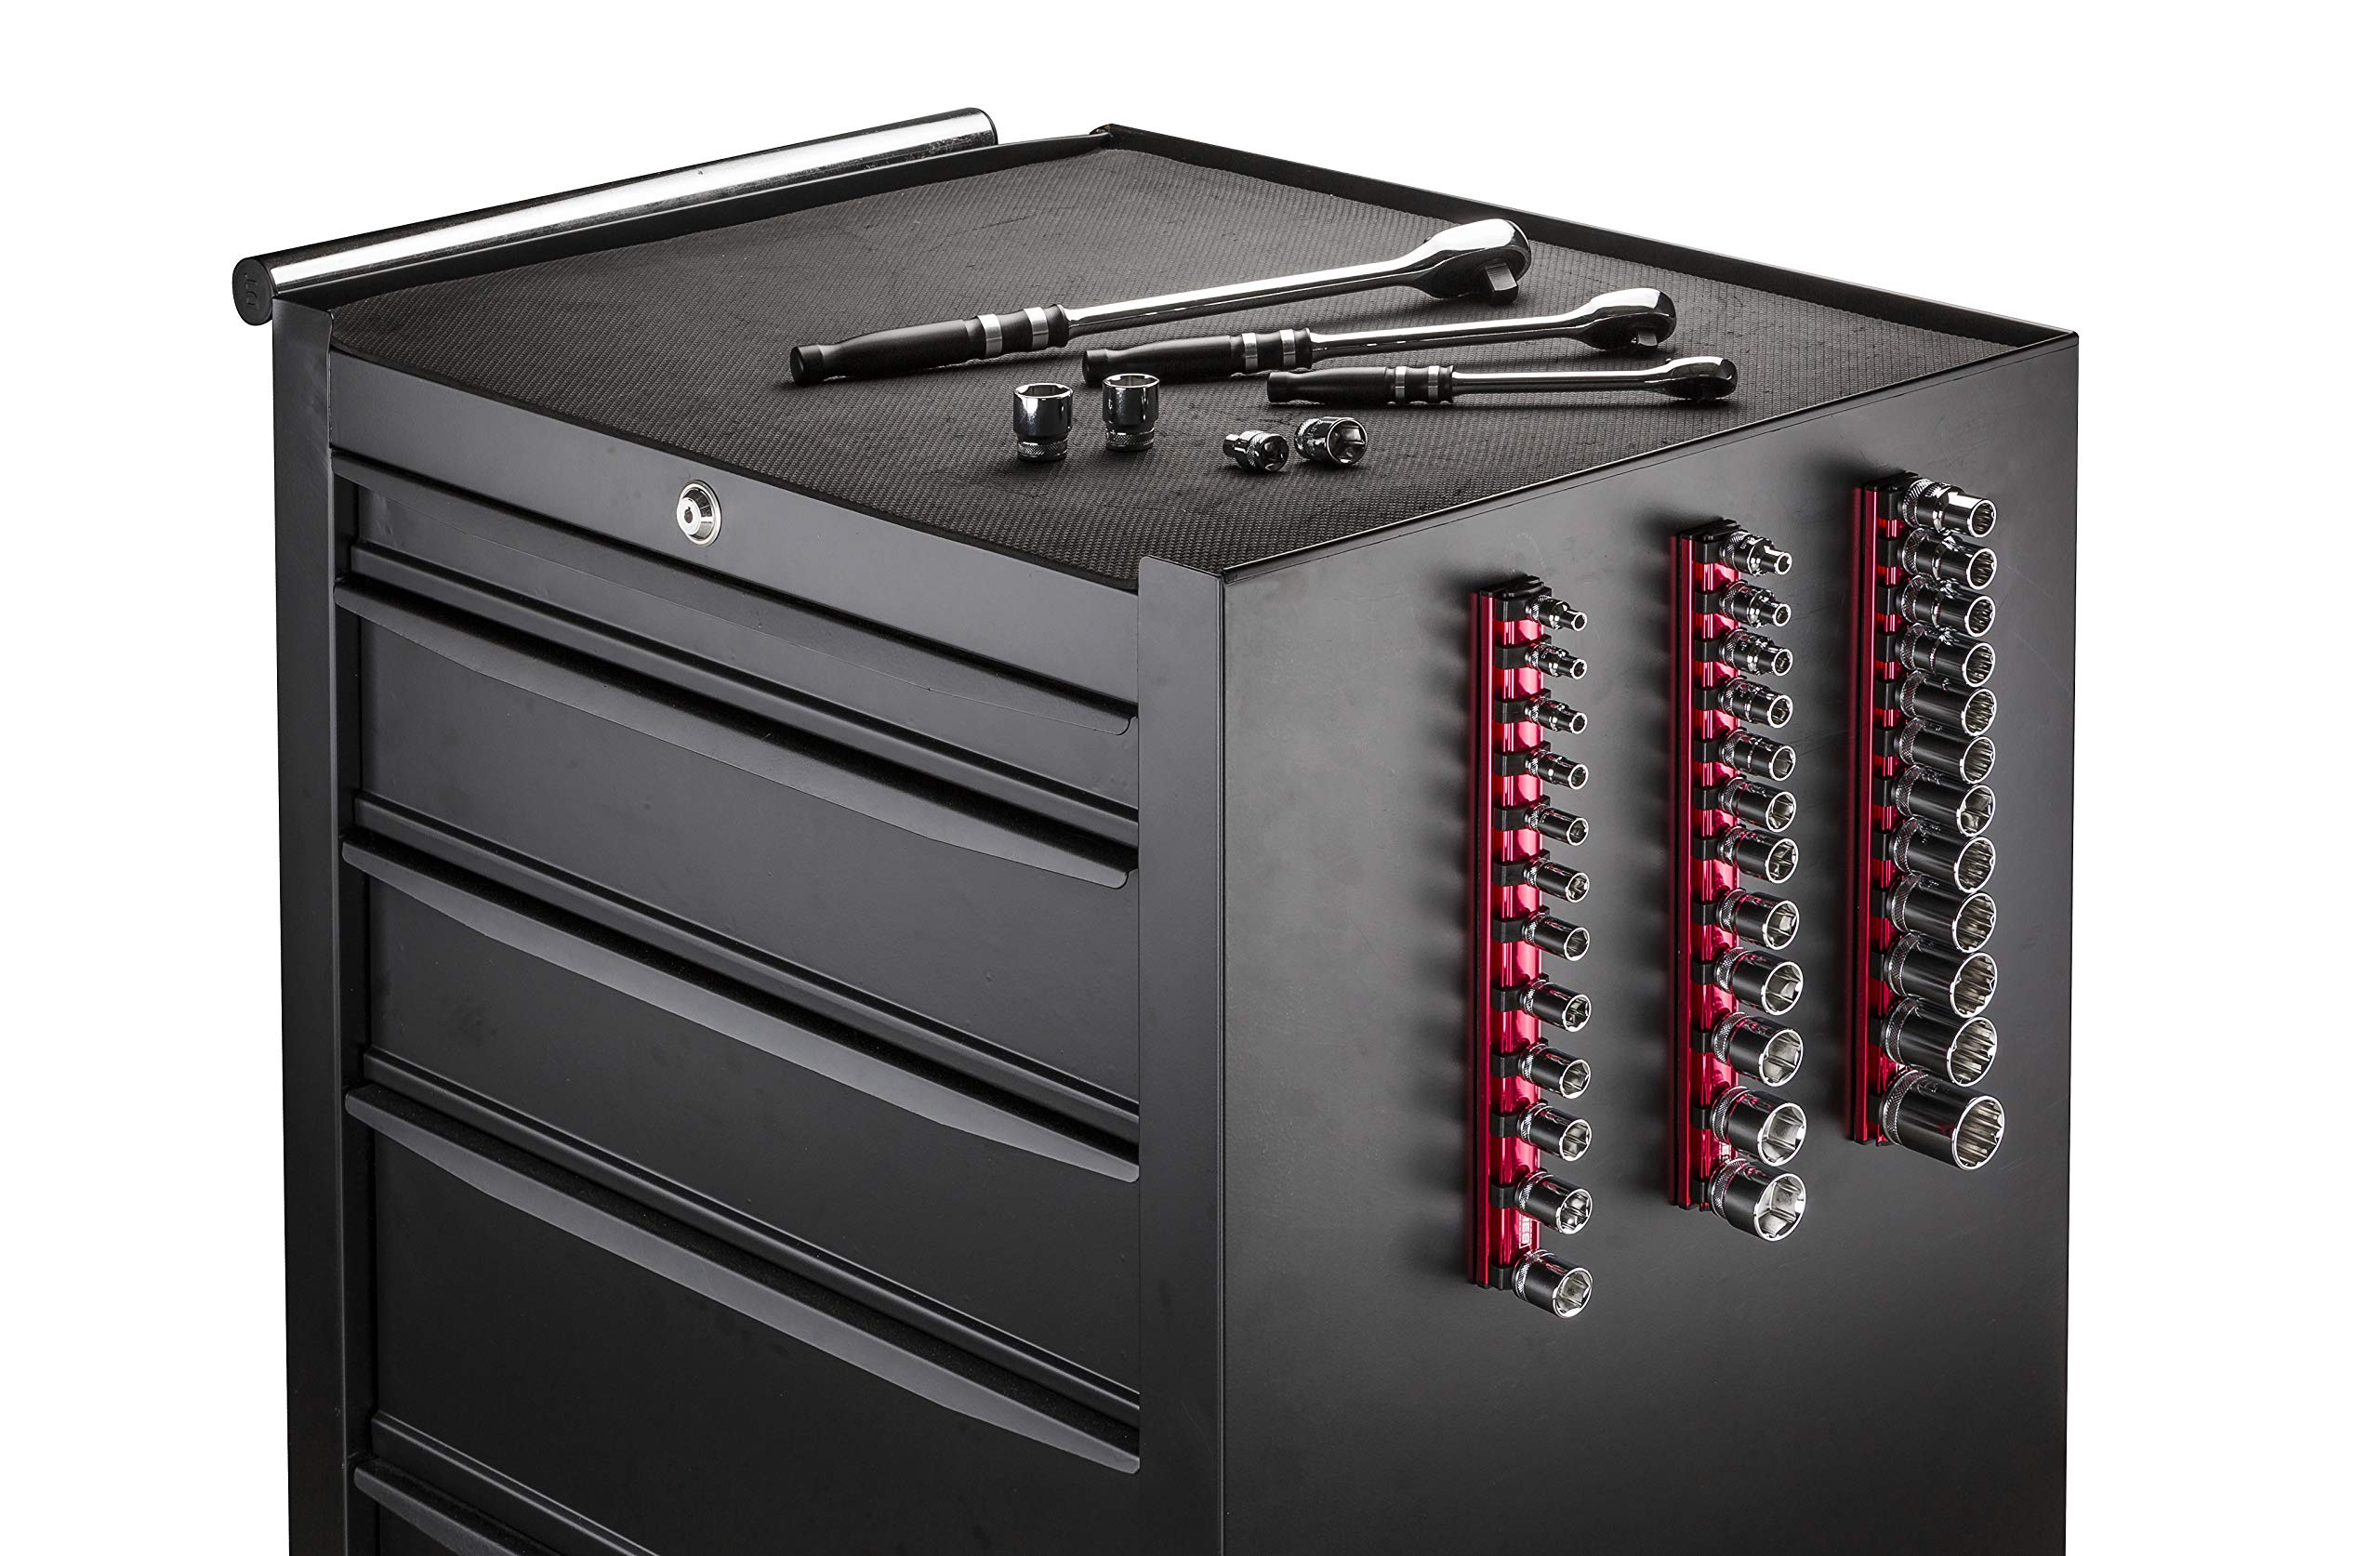 ARES 71181 | 3/8-Inch Drive Magnetic Socket Organizer | Aluminum Rail Stores up to 12 Sockets and Keeps Your Tool Box Organized by ARES (Image #7)